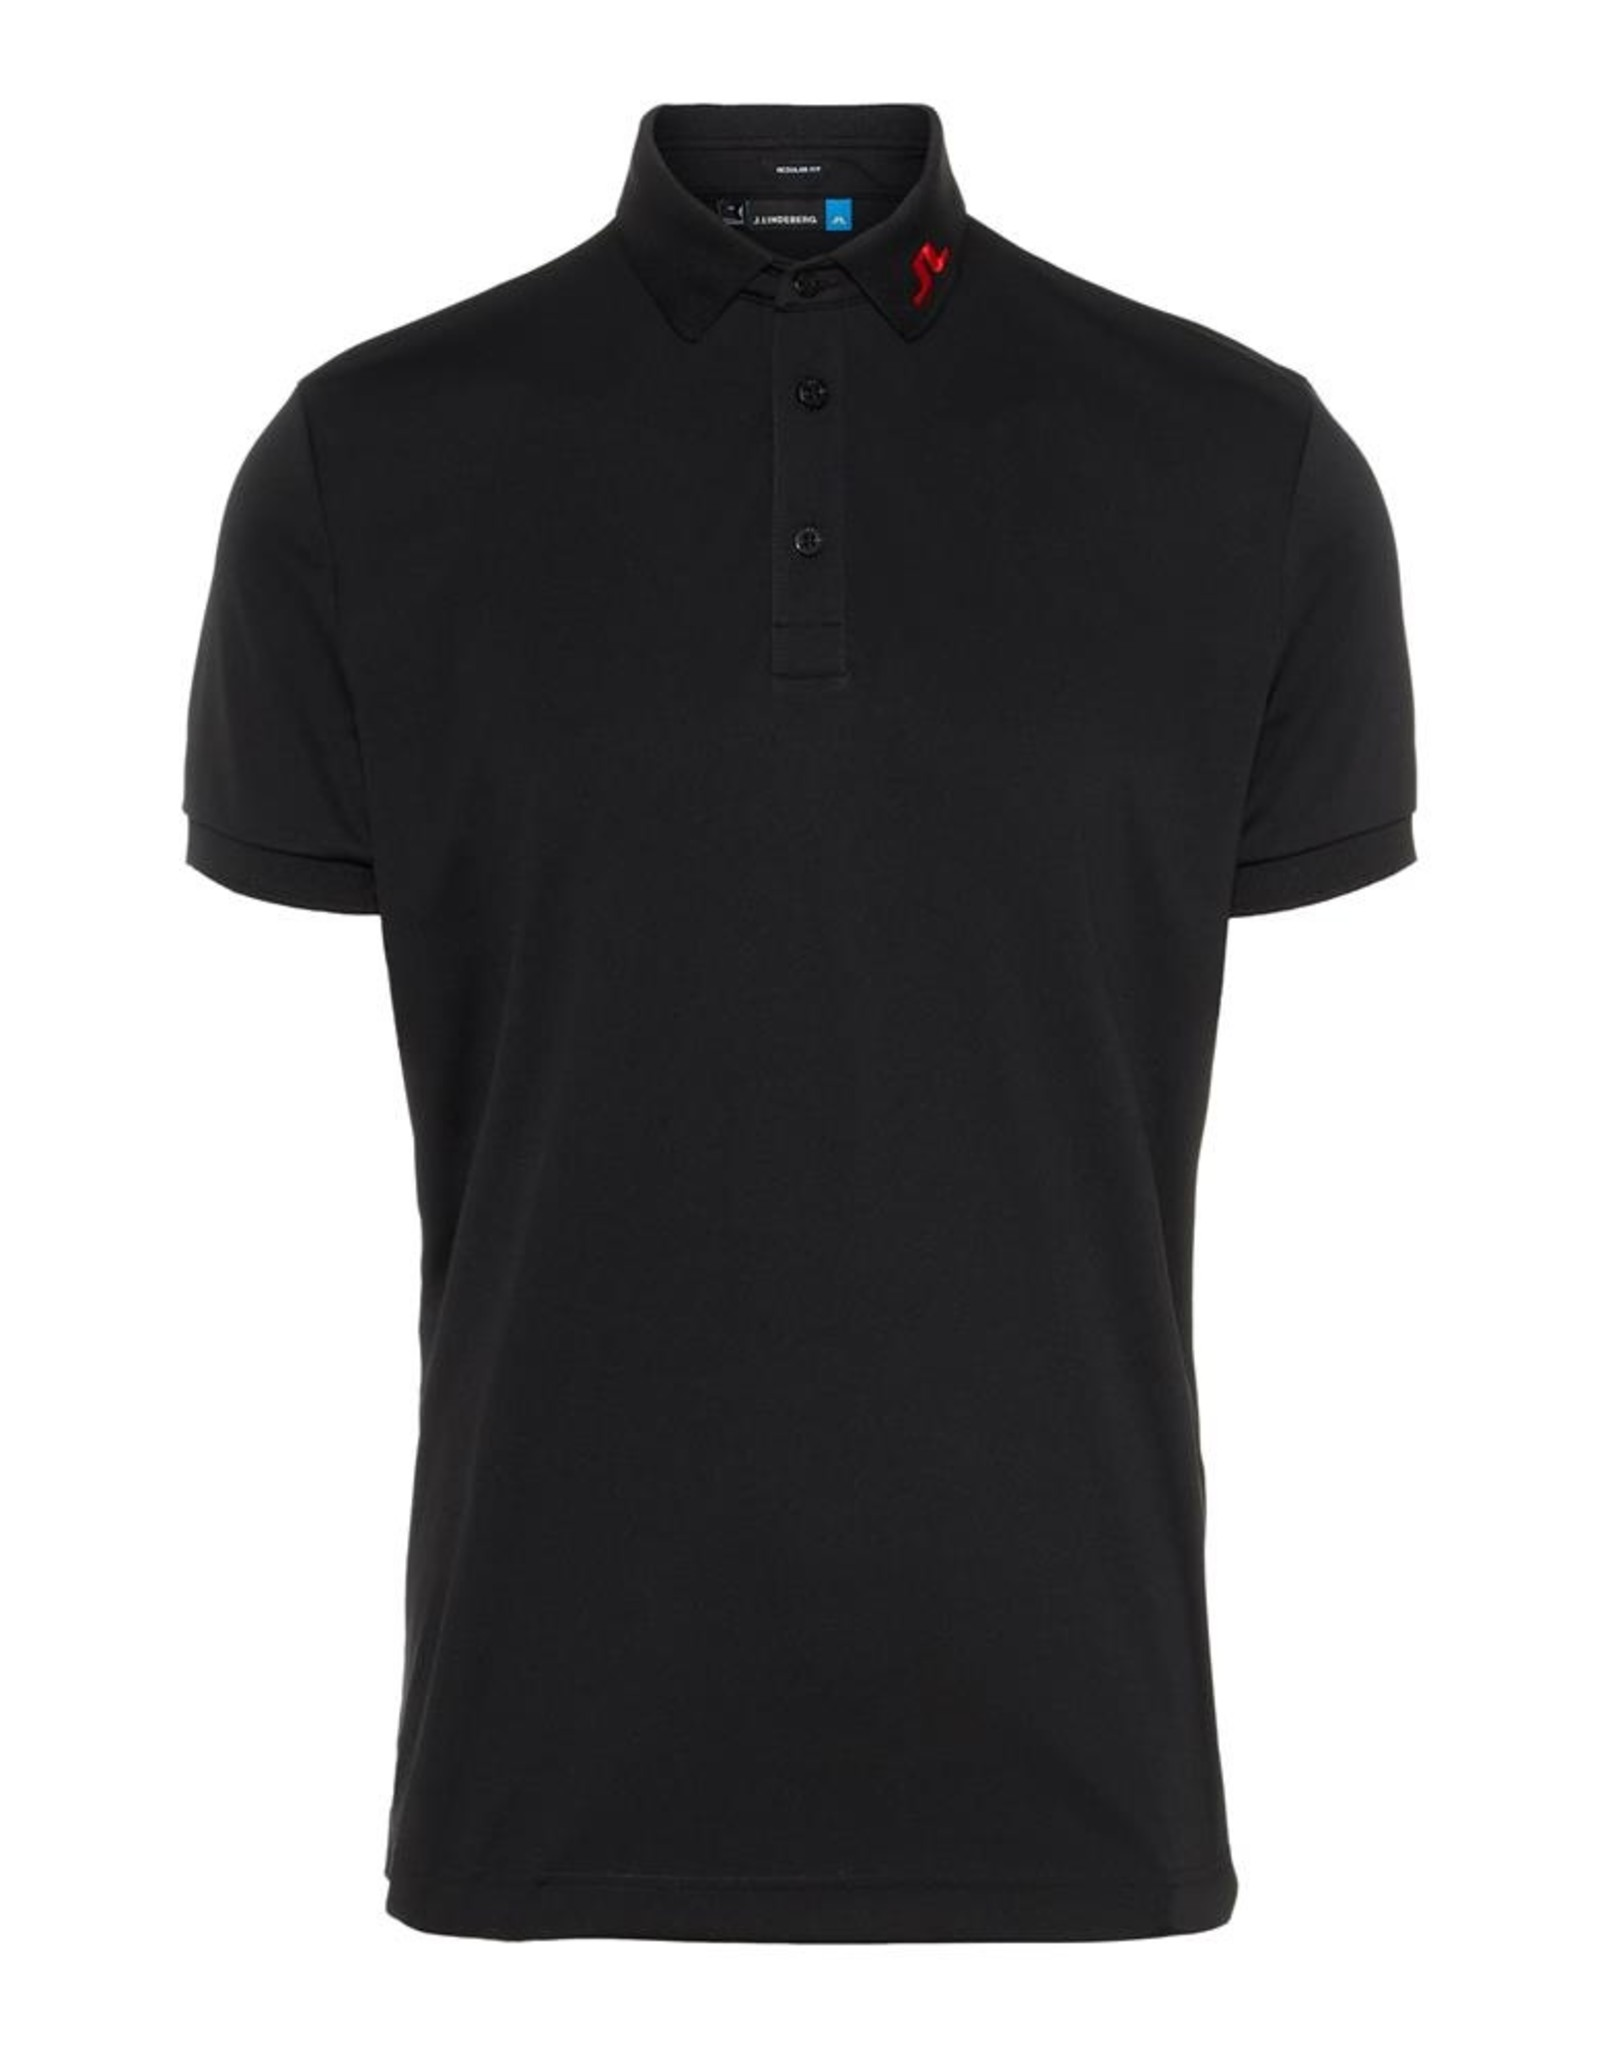 J LINDEBERG KV REGULAR FIT GOLF POLO